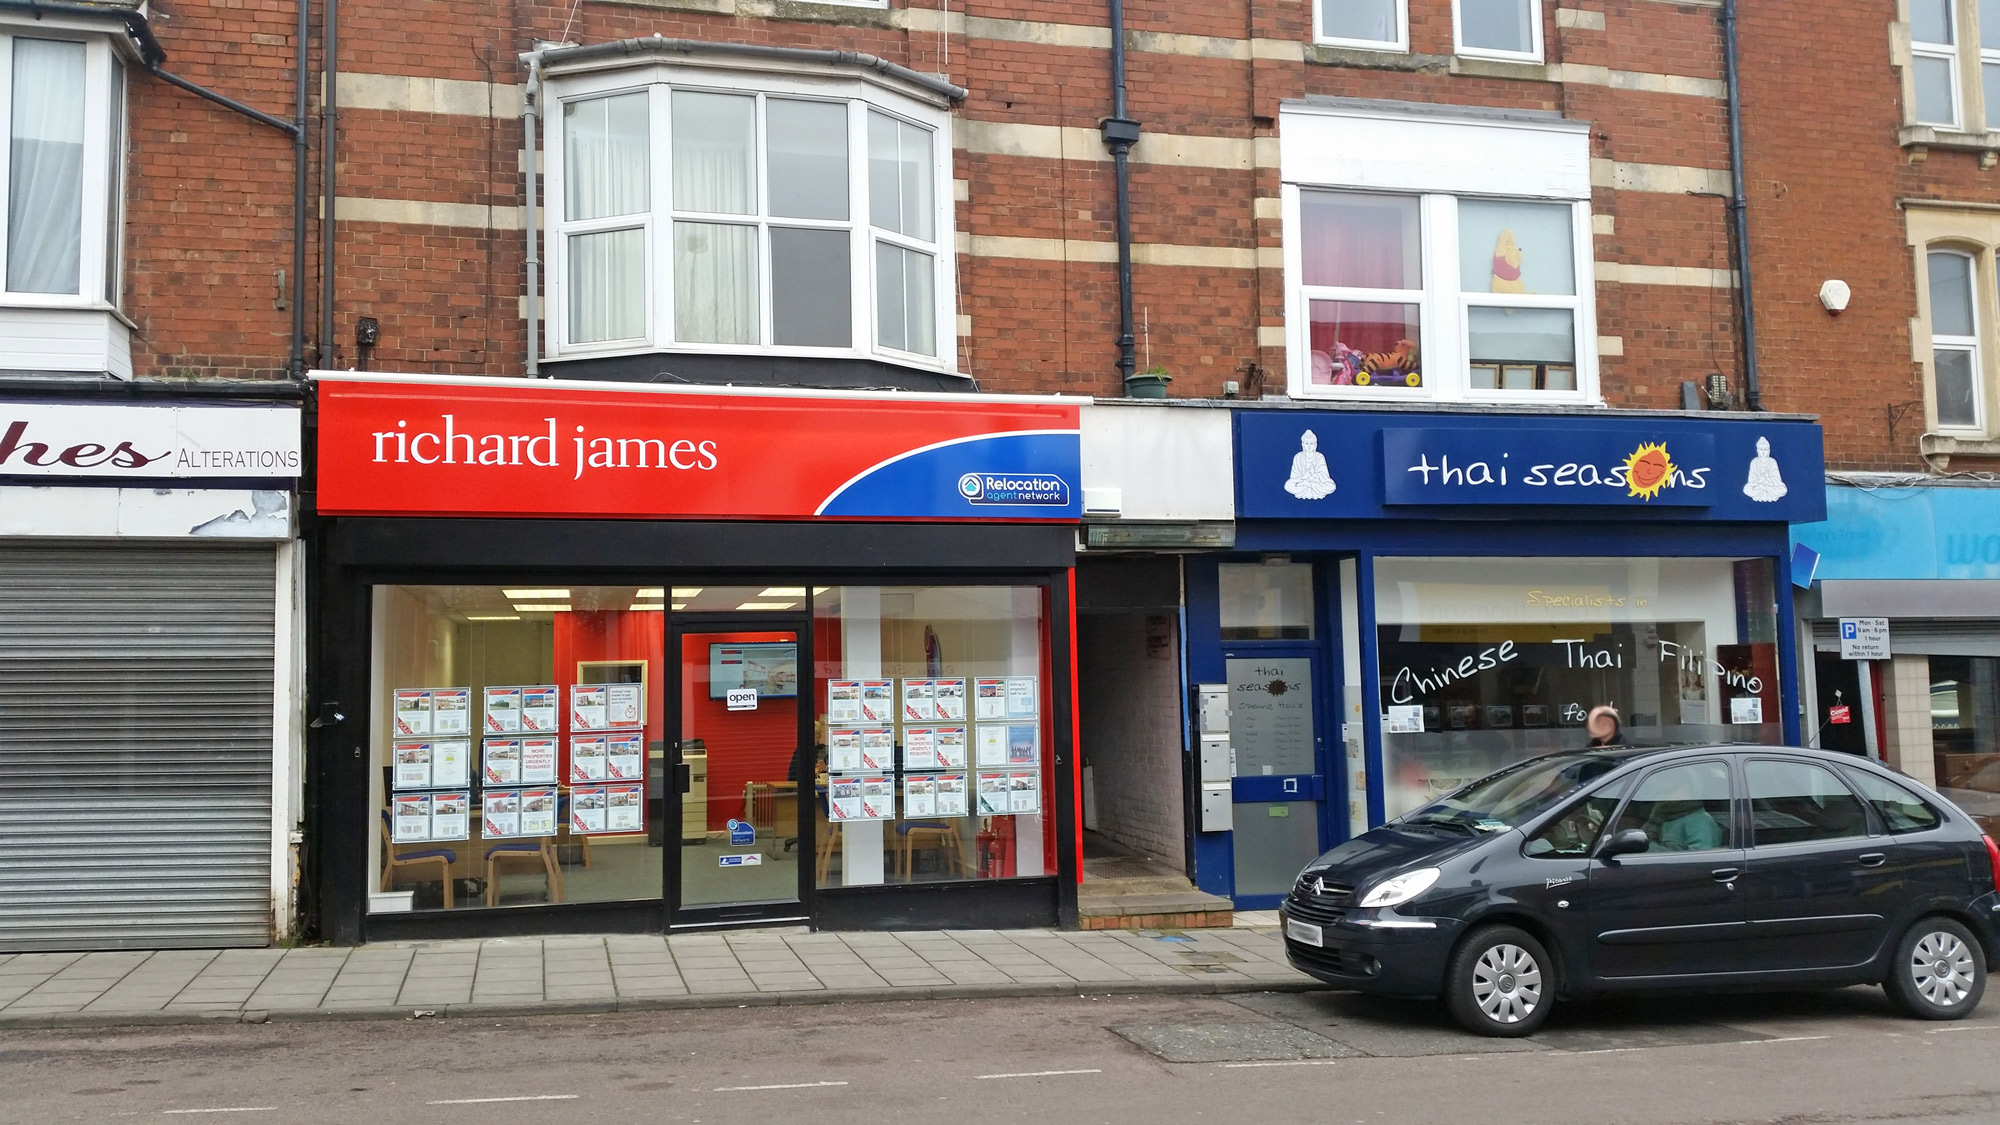 Richard James Estate Agents at 74 High Street, and next door, Thai Seasons at number 72. February 2016.